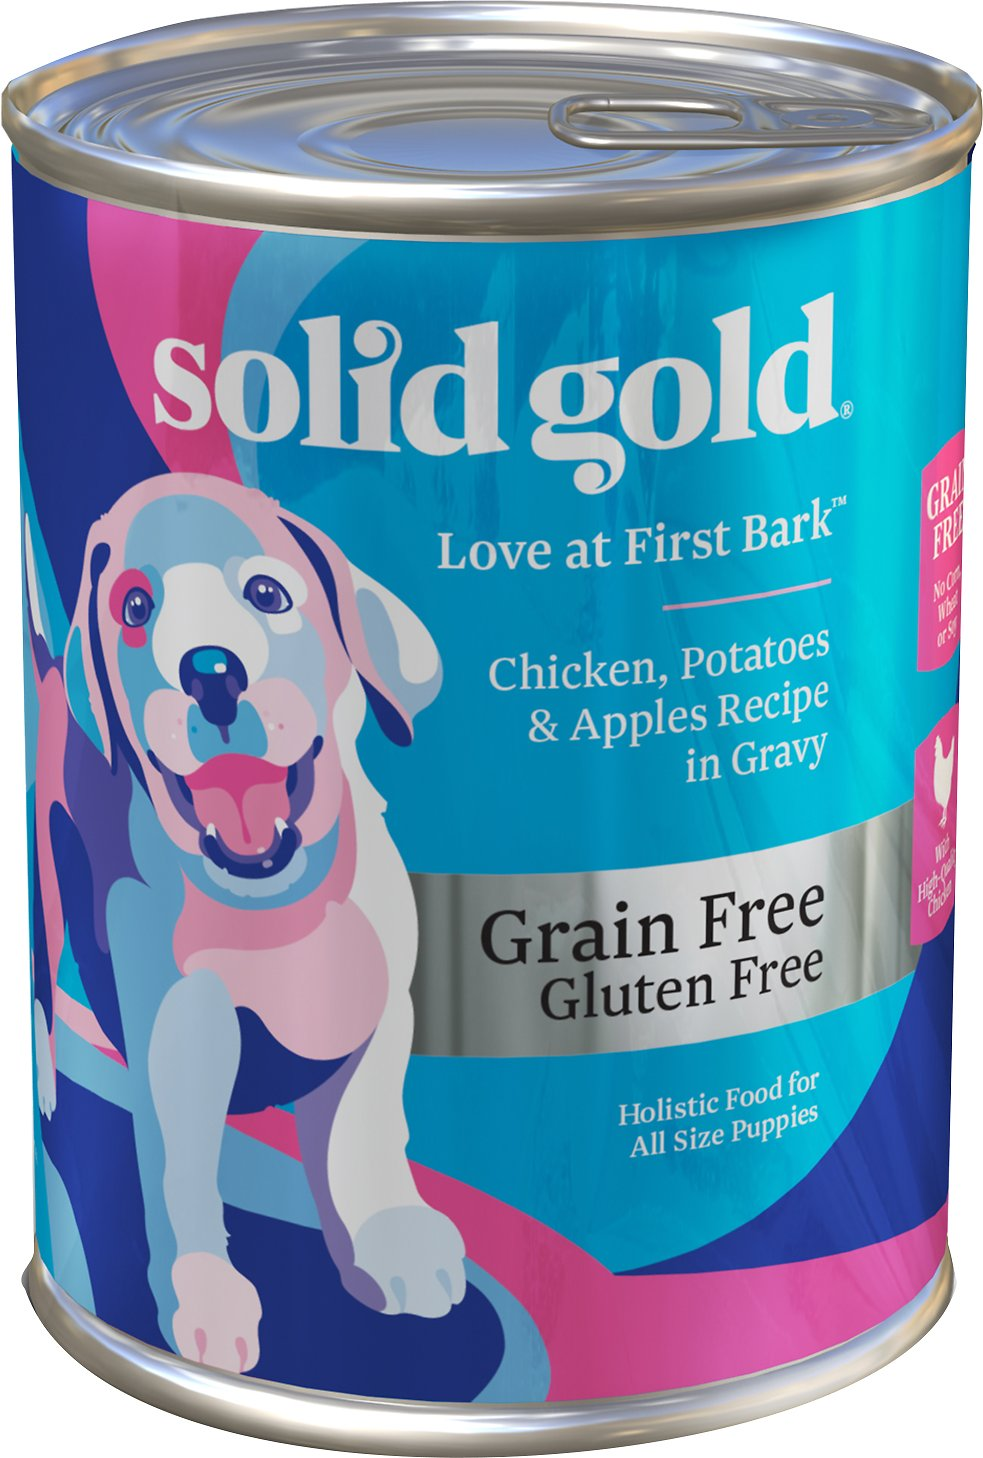 Solid Gold Love At First Bark Chicken, Potatoes & Apples Puppy Recipe Grain-Free Canned Dog Food, 13.2-oz